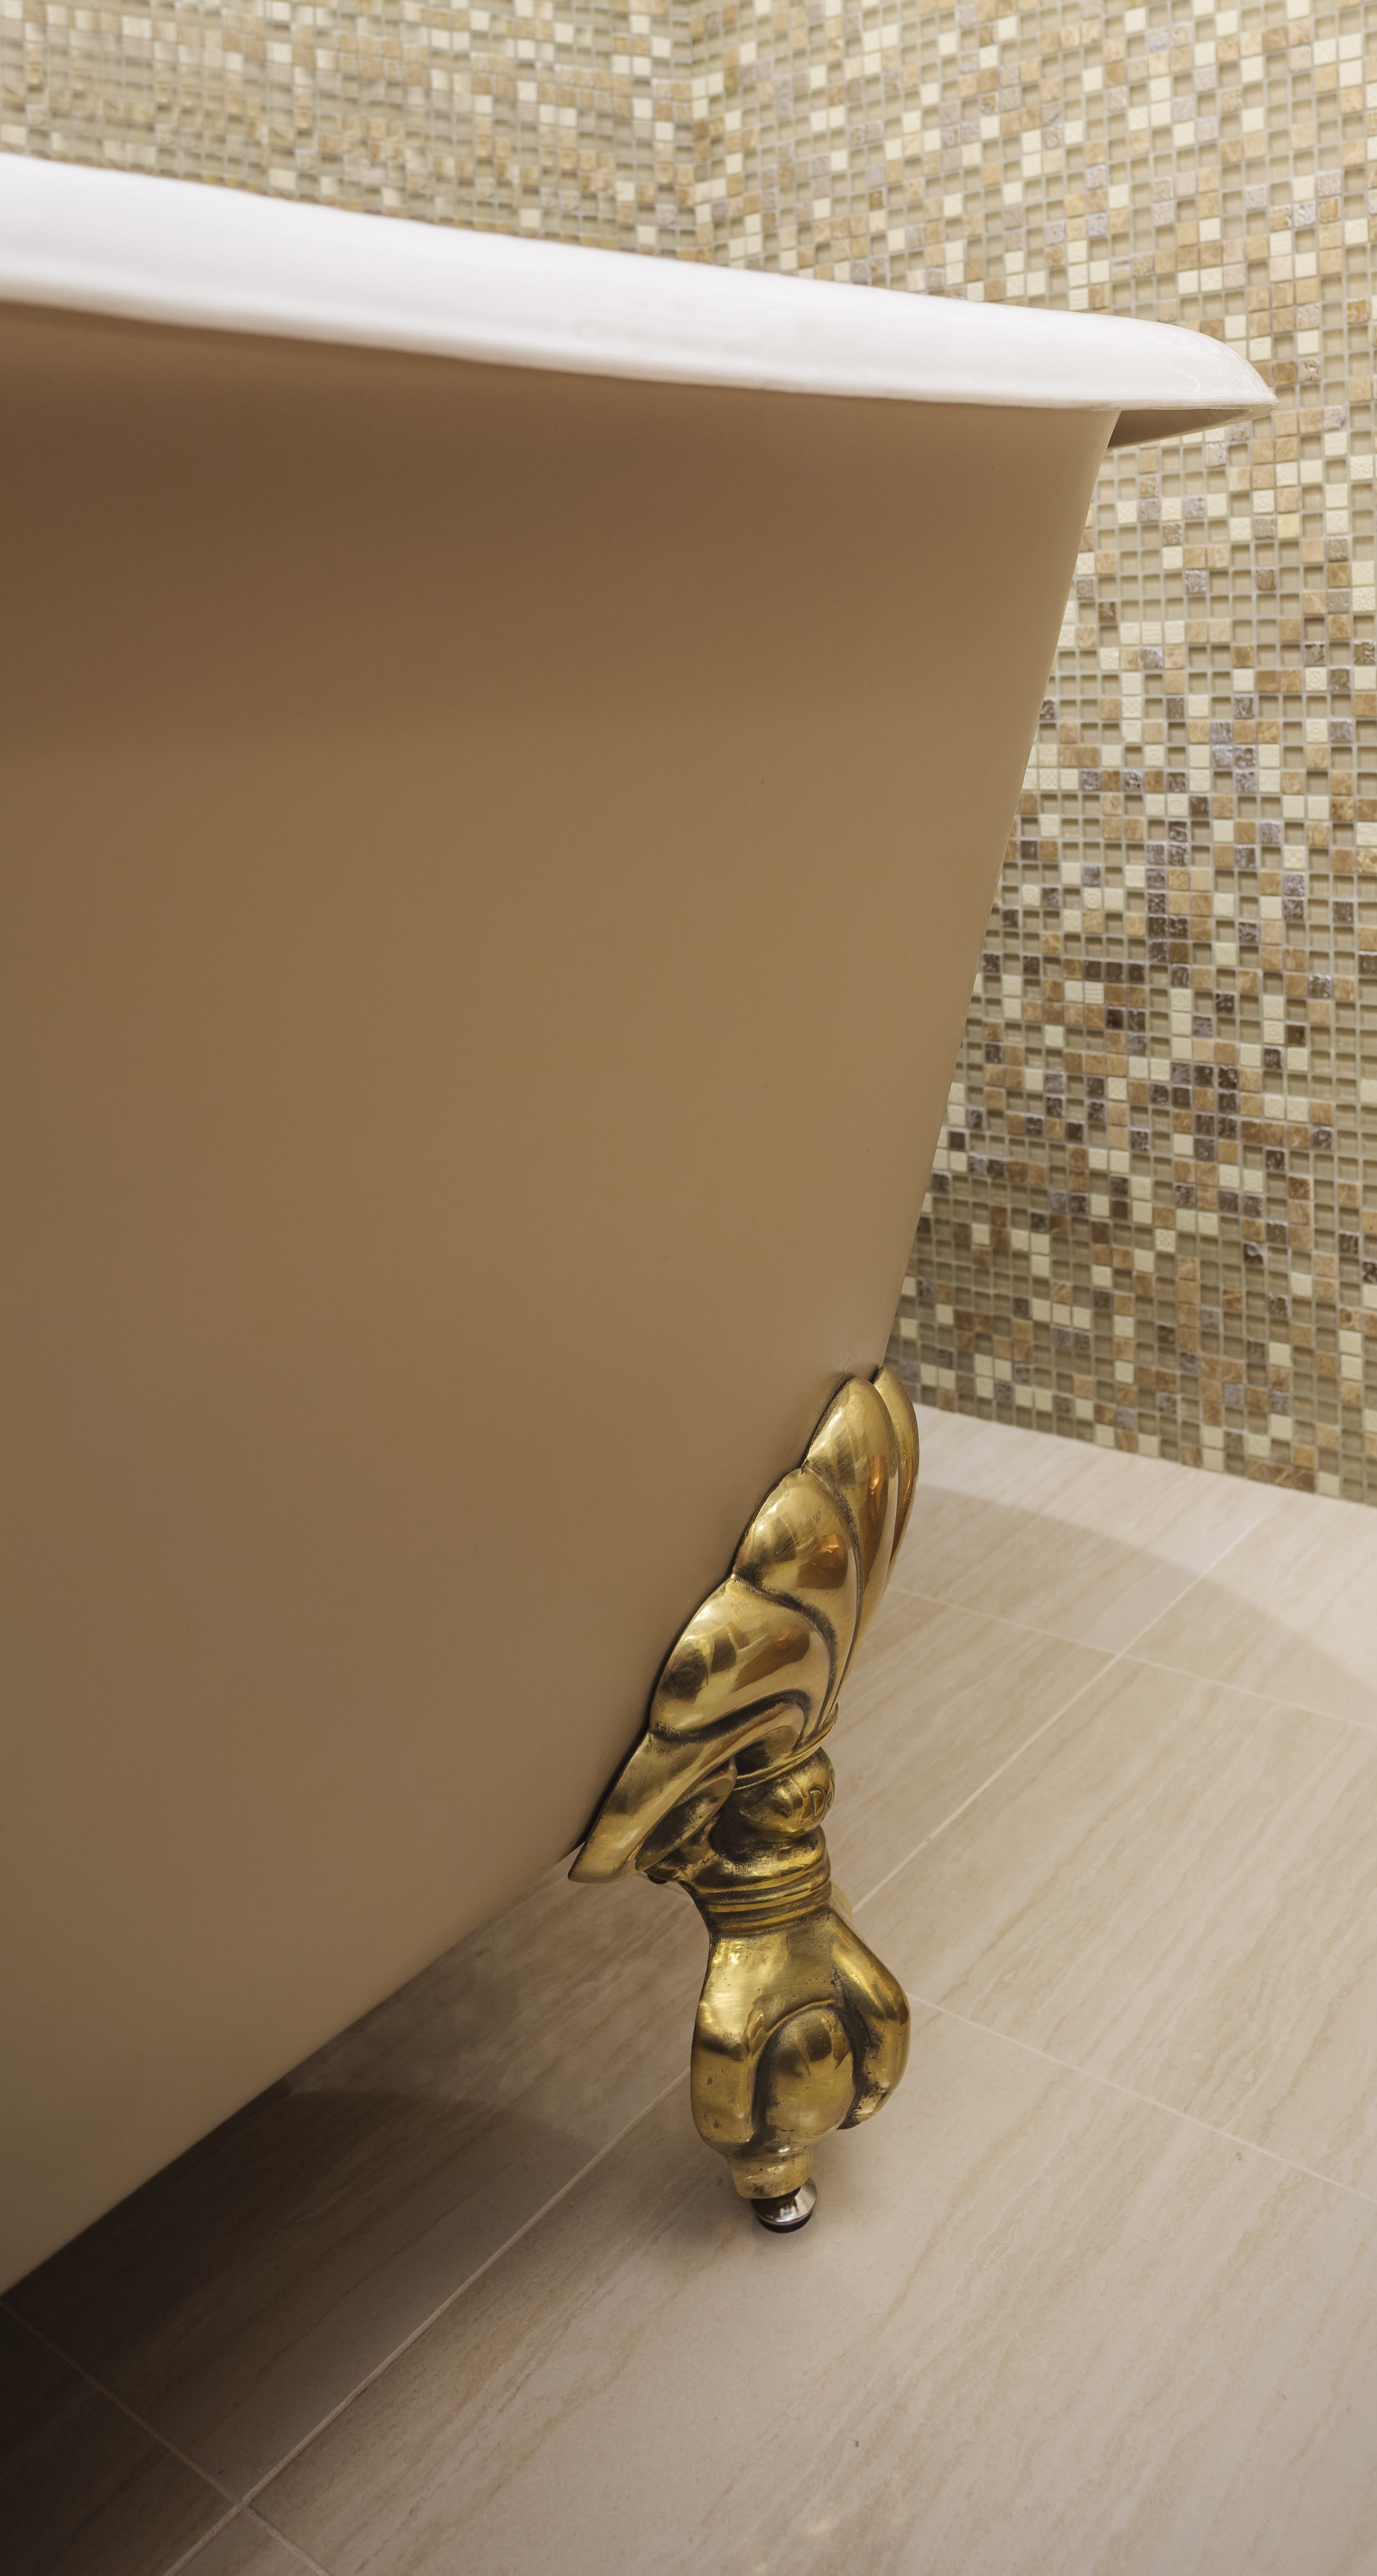 gold claw foot bathtub new orleans designers khb interiors